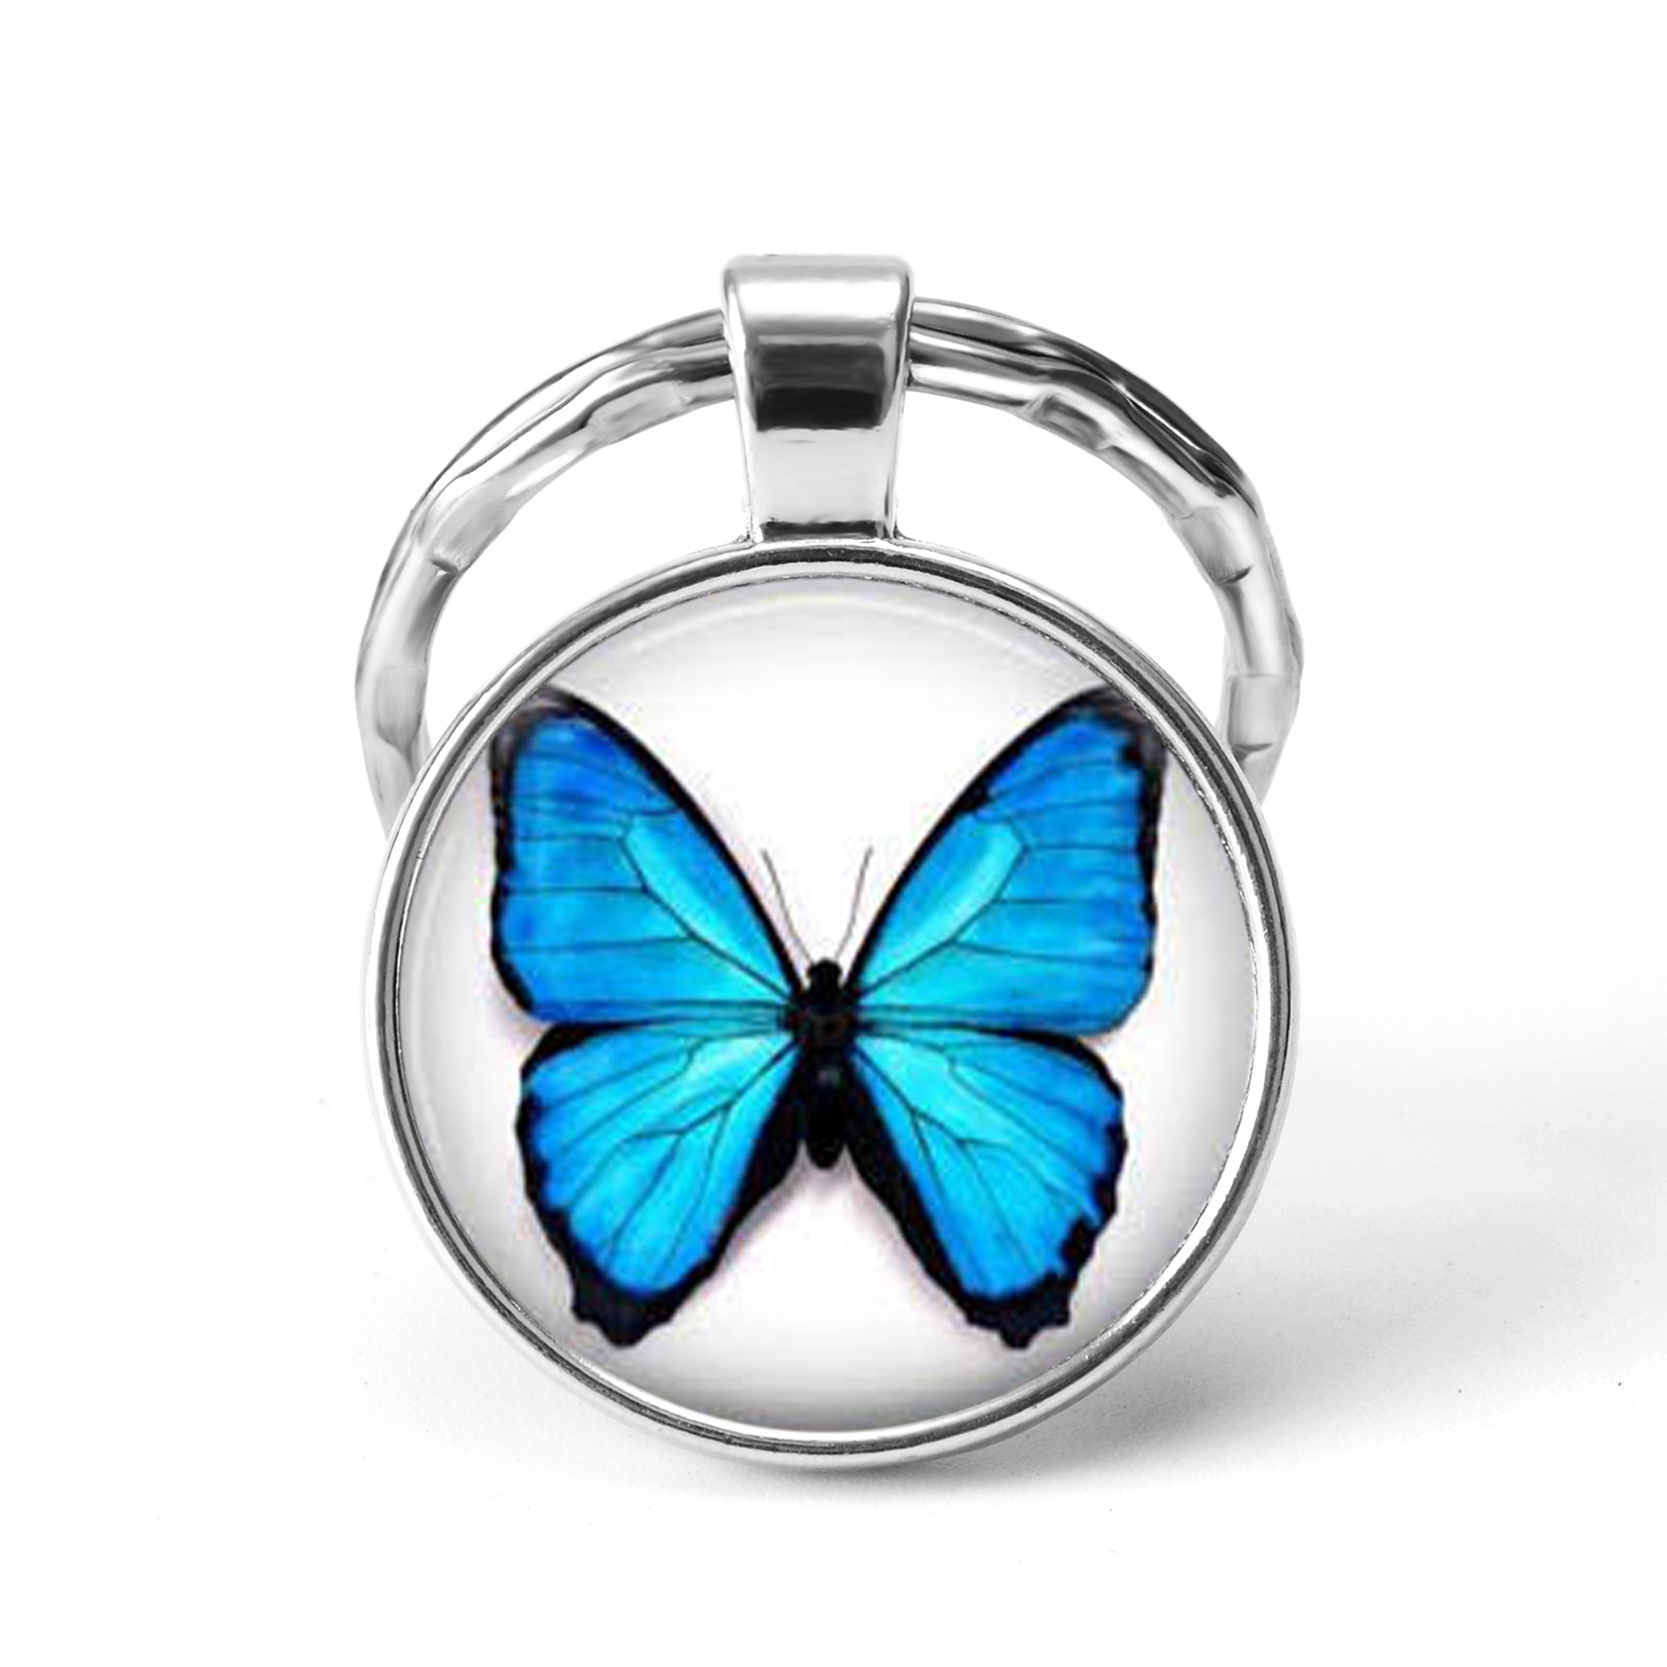 Blue Butterfly Pendant Silver Keychain Glass Cabochon Jewelry Cute Cat Claw Key Chain Ring Students Fashion Gift